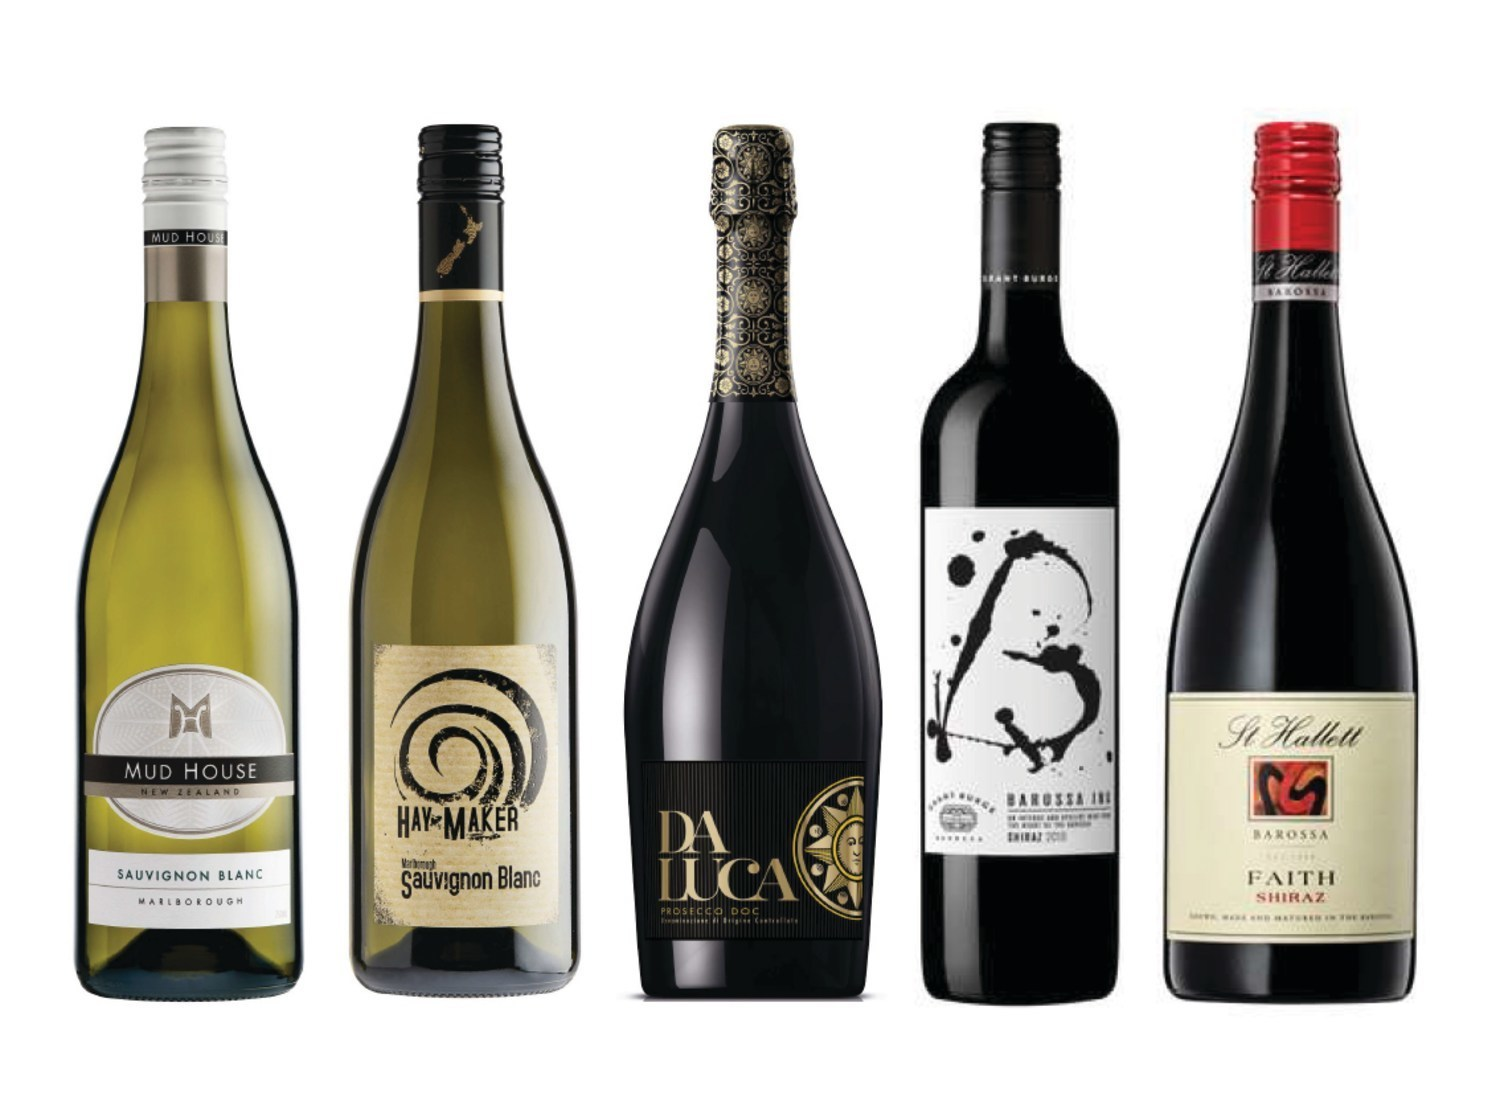 These wines are among those Accolade Wines now imported into US by Quintessential